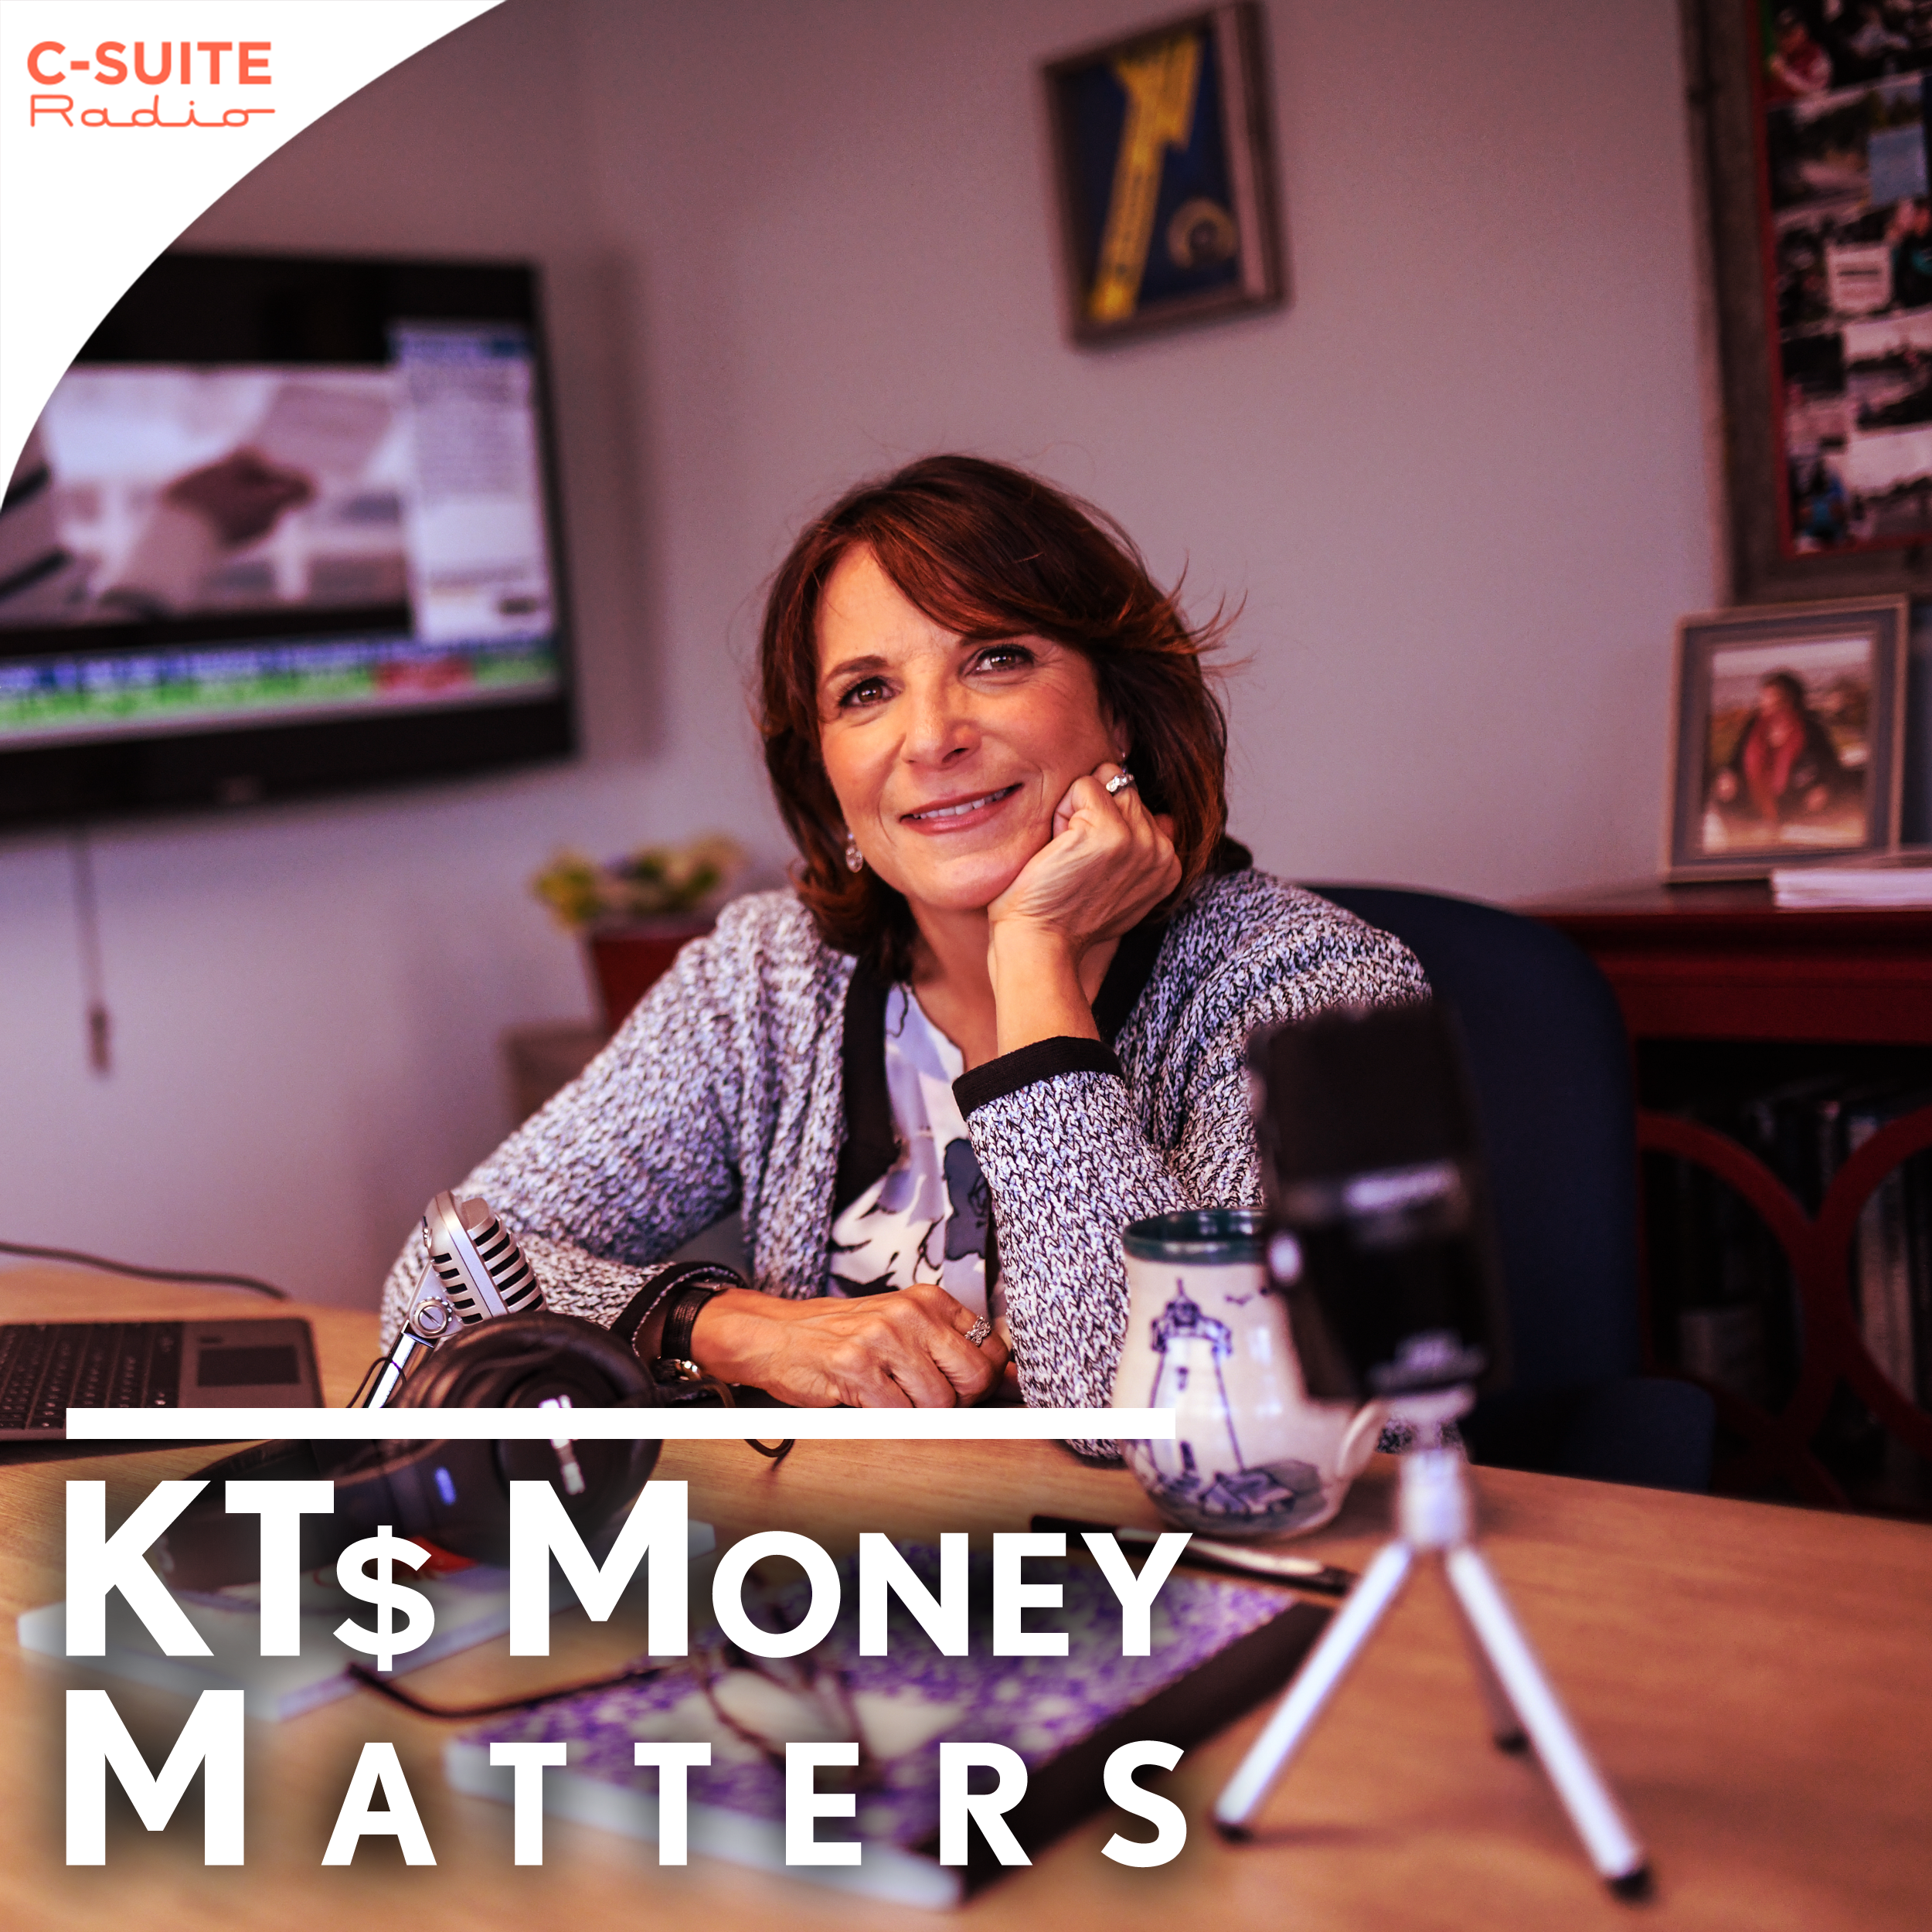 KTsMoneyMatters Podcast